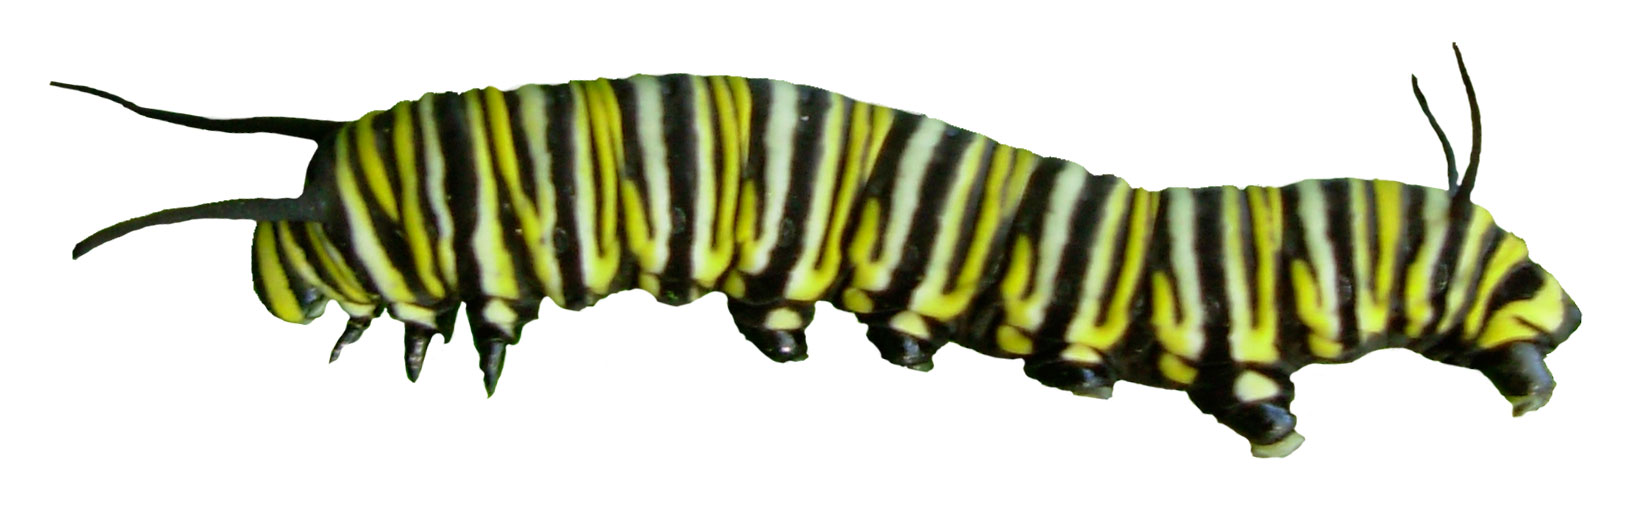 Caterpillar Into Butterfly PNG - 157053